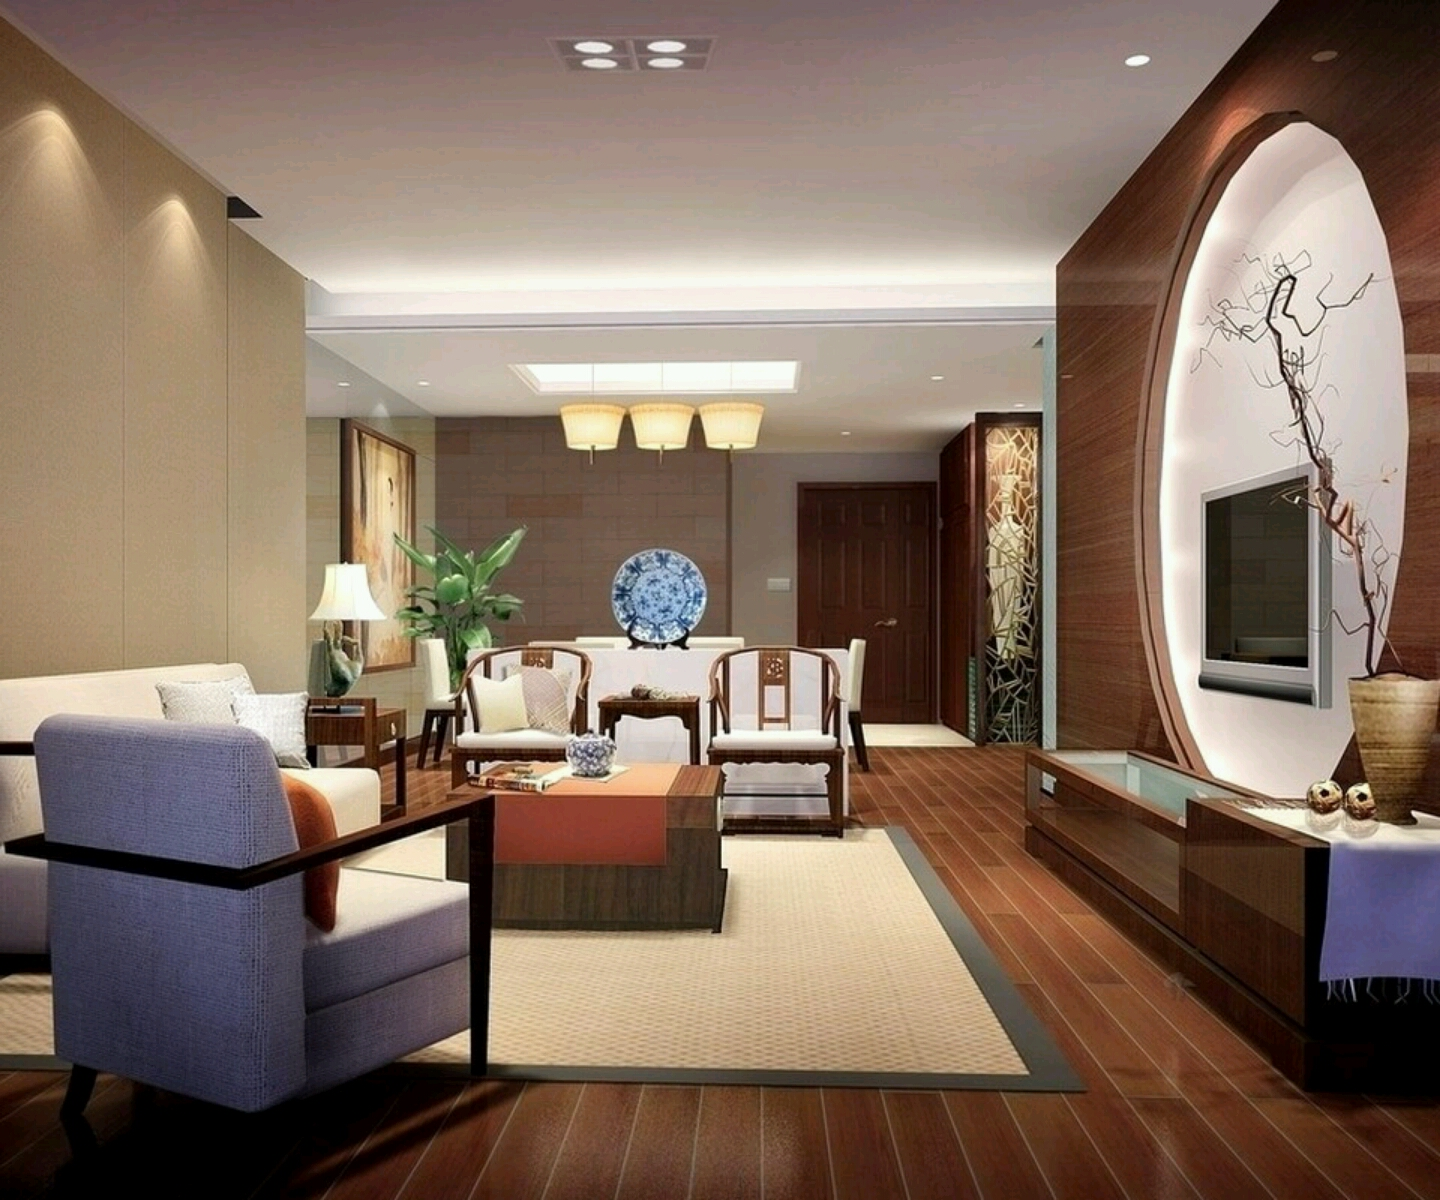 Luxury homes interior decoration living room designs ideas for House interior design living room